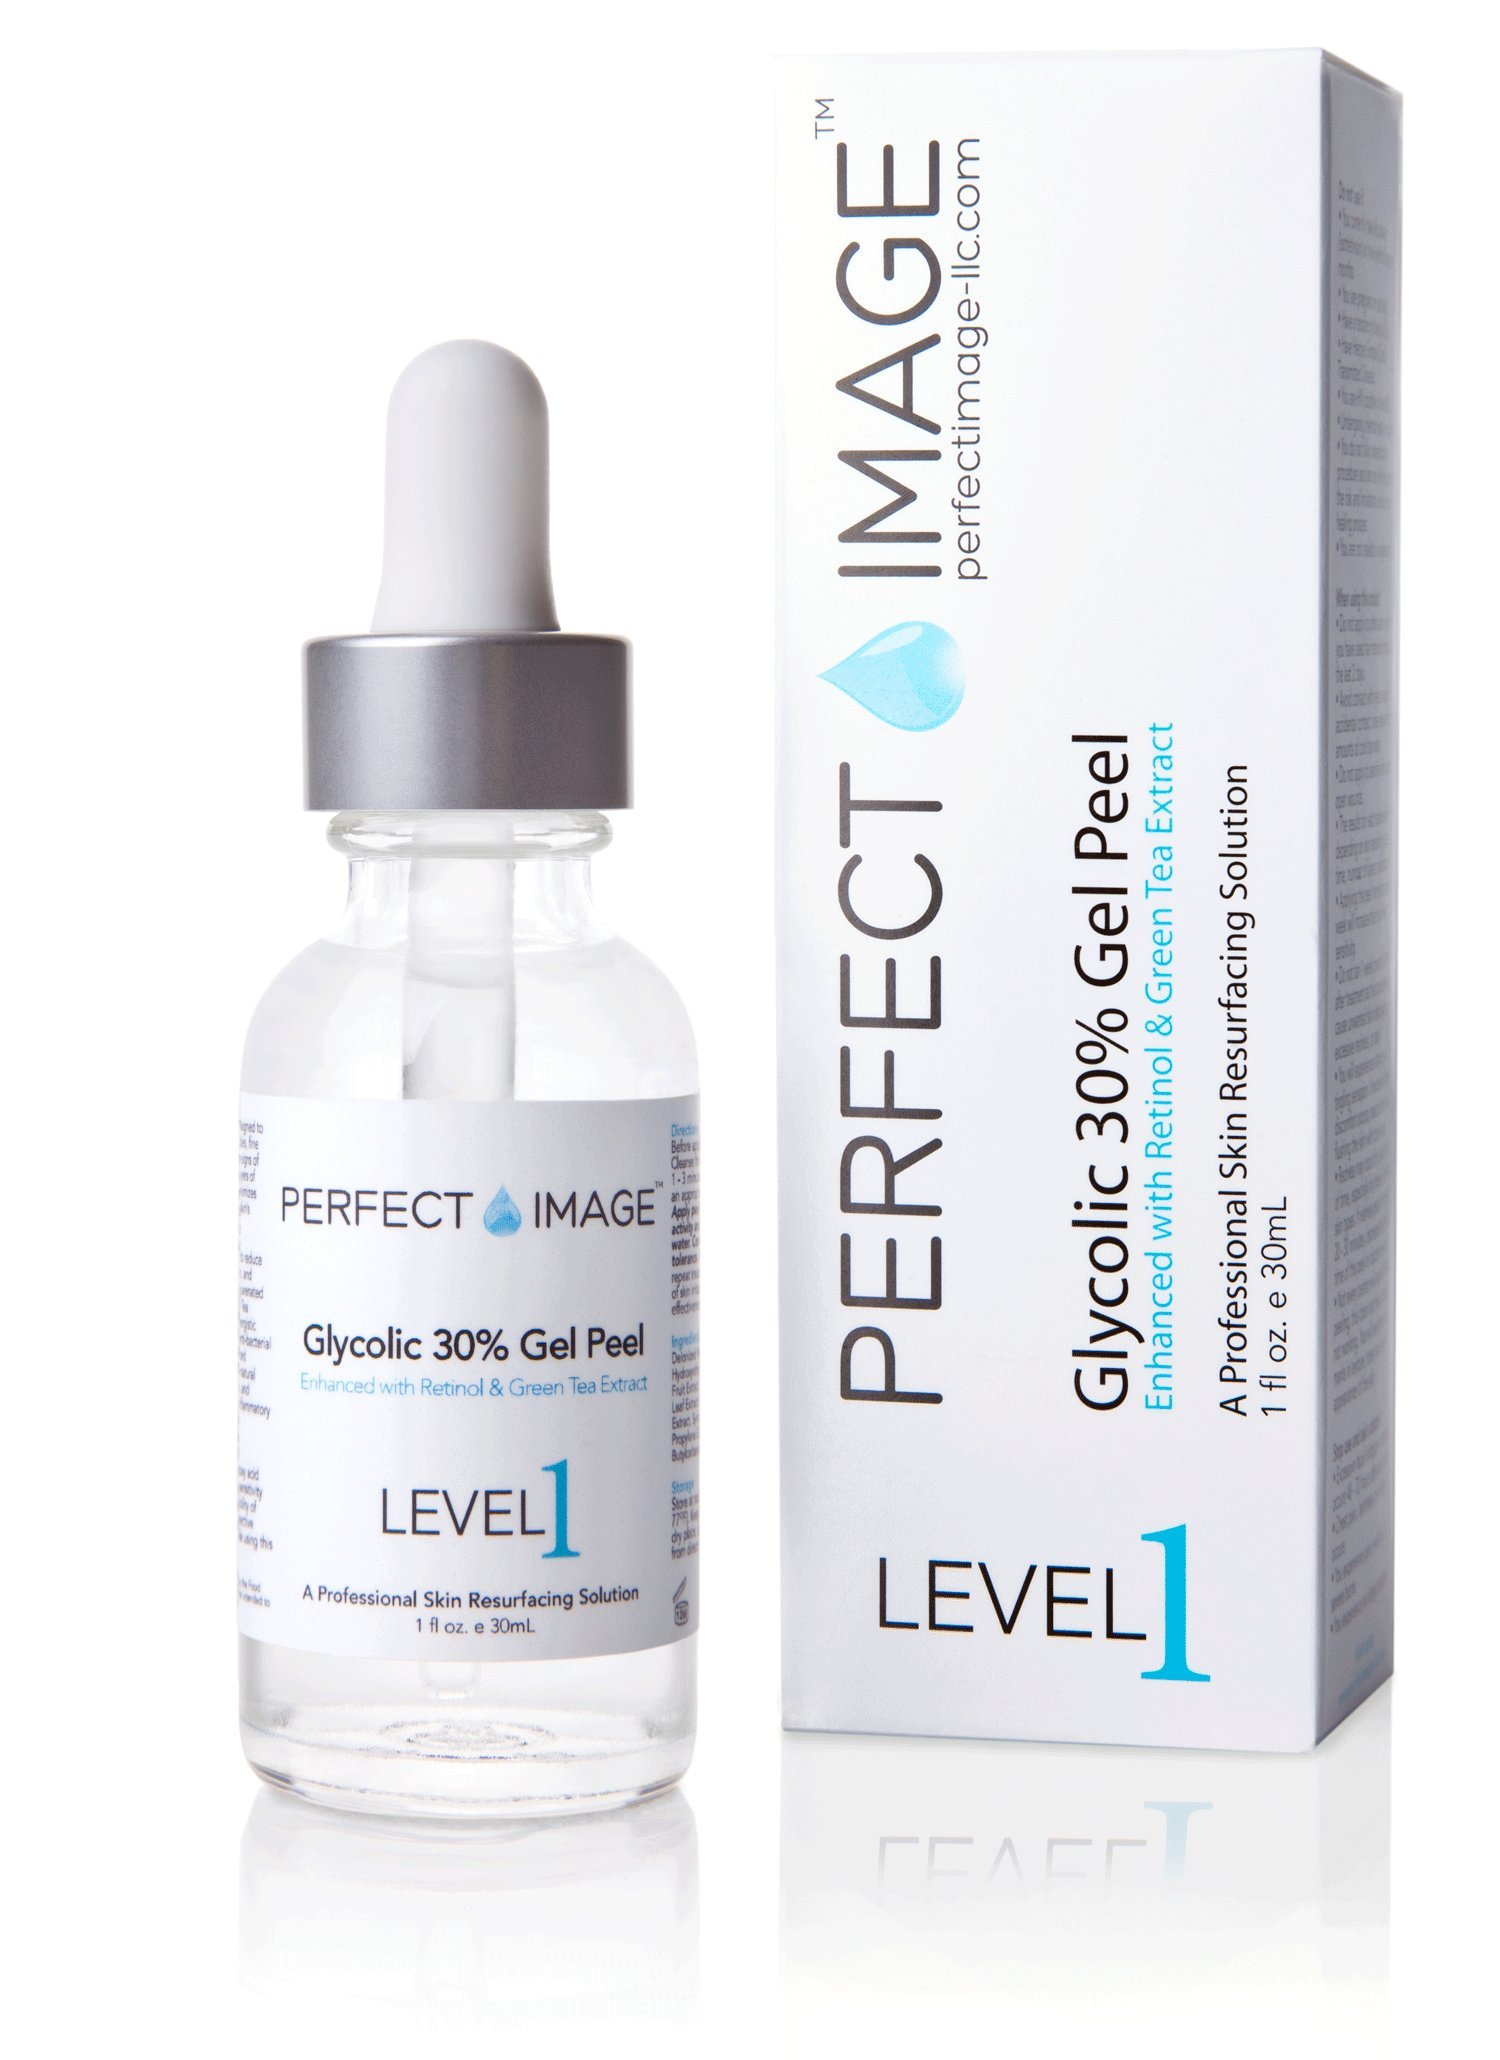 Glycolic Acid 30% Gel Peel - Enhanced with Retinol and Green Tea Extract (Professional Chemical Peel)- 1 fl oz 30mL